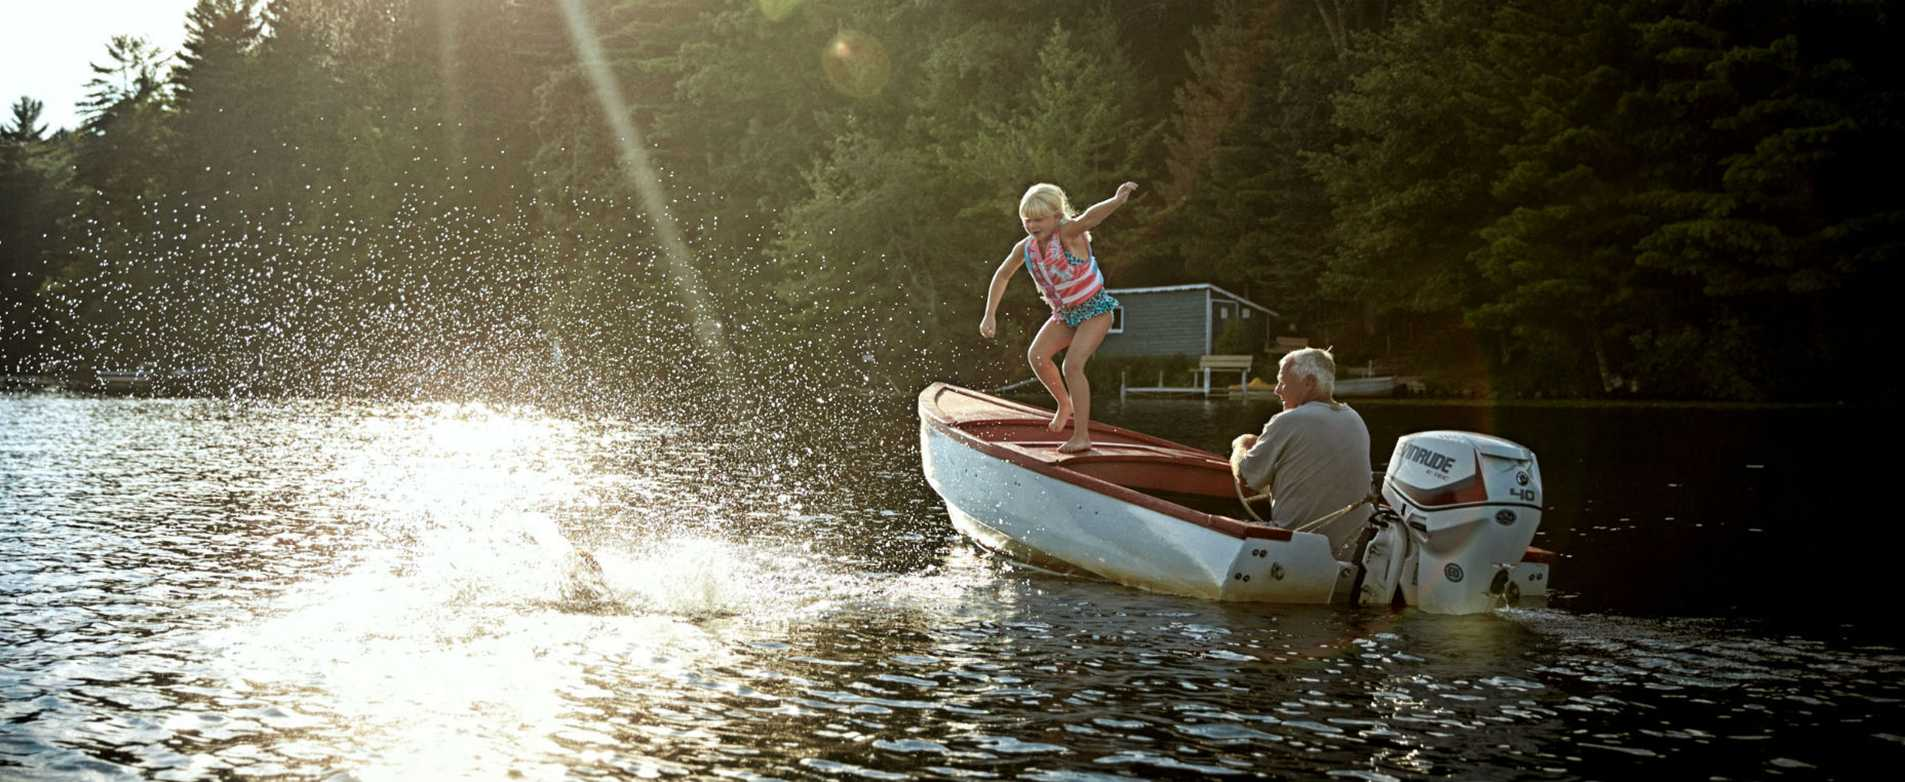 Girl Jumping off Boat into Lake